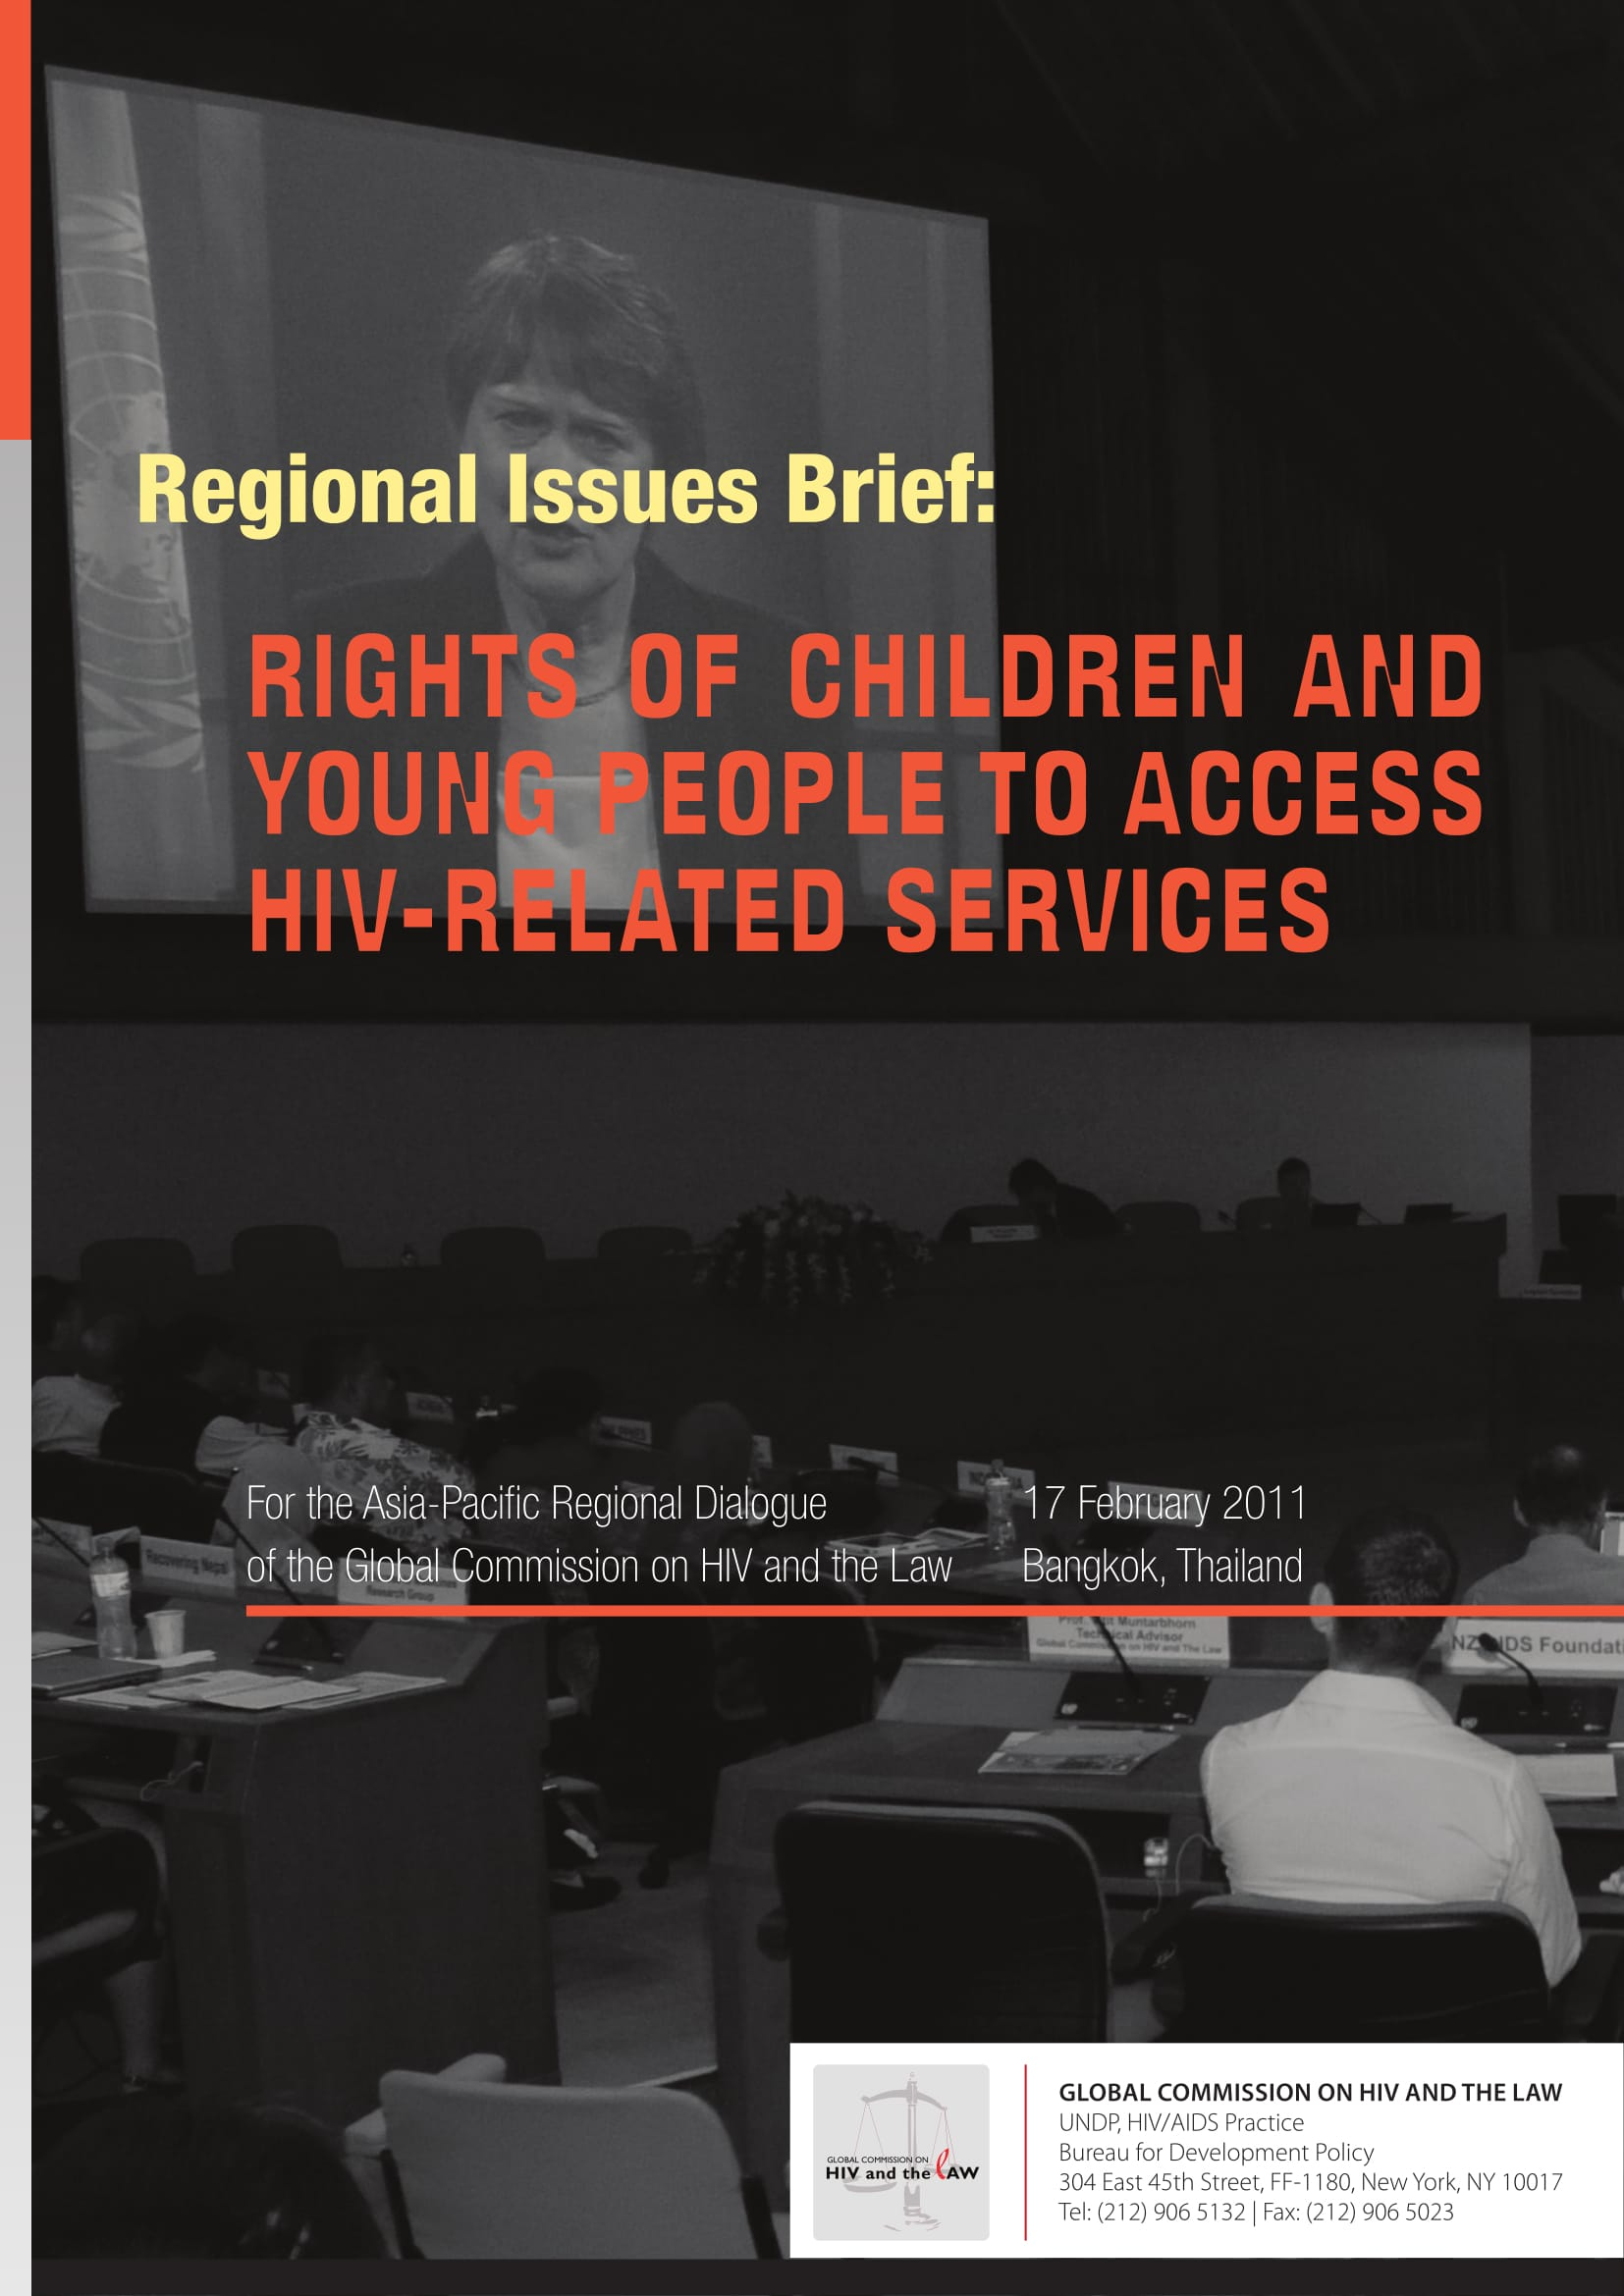 Regional issues brief: Rights of children and young people to access HIV-related services